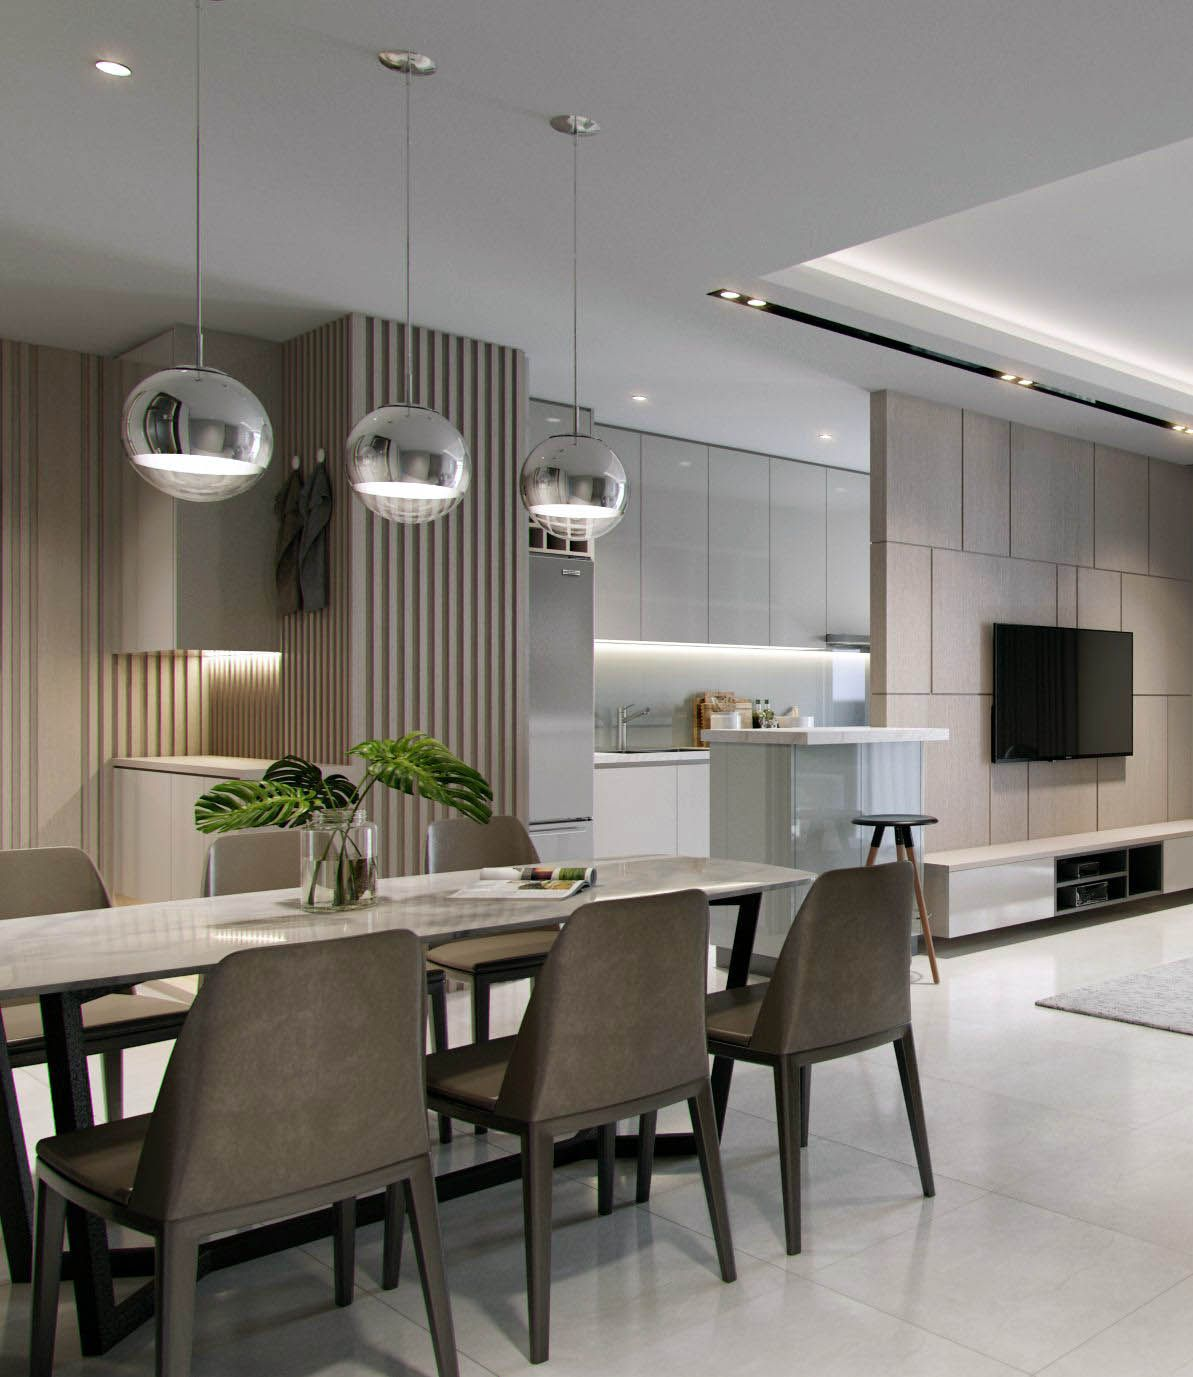 Condo Dining Living Room Design Ideas: Top 1 Bedroom Apartments 90048 Exclusive On Homesable.com